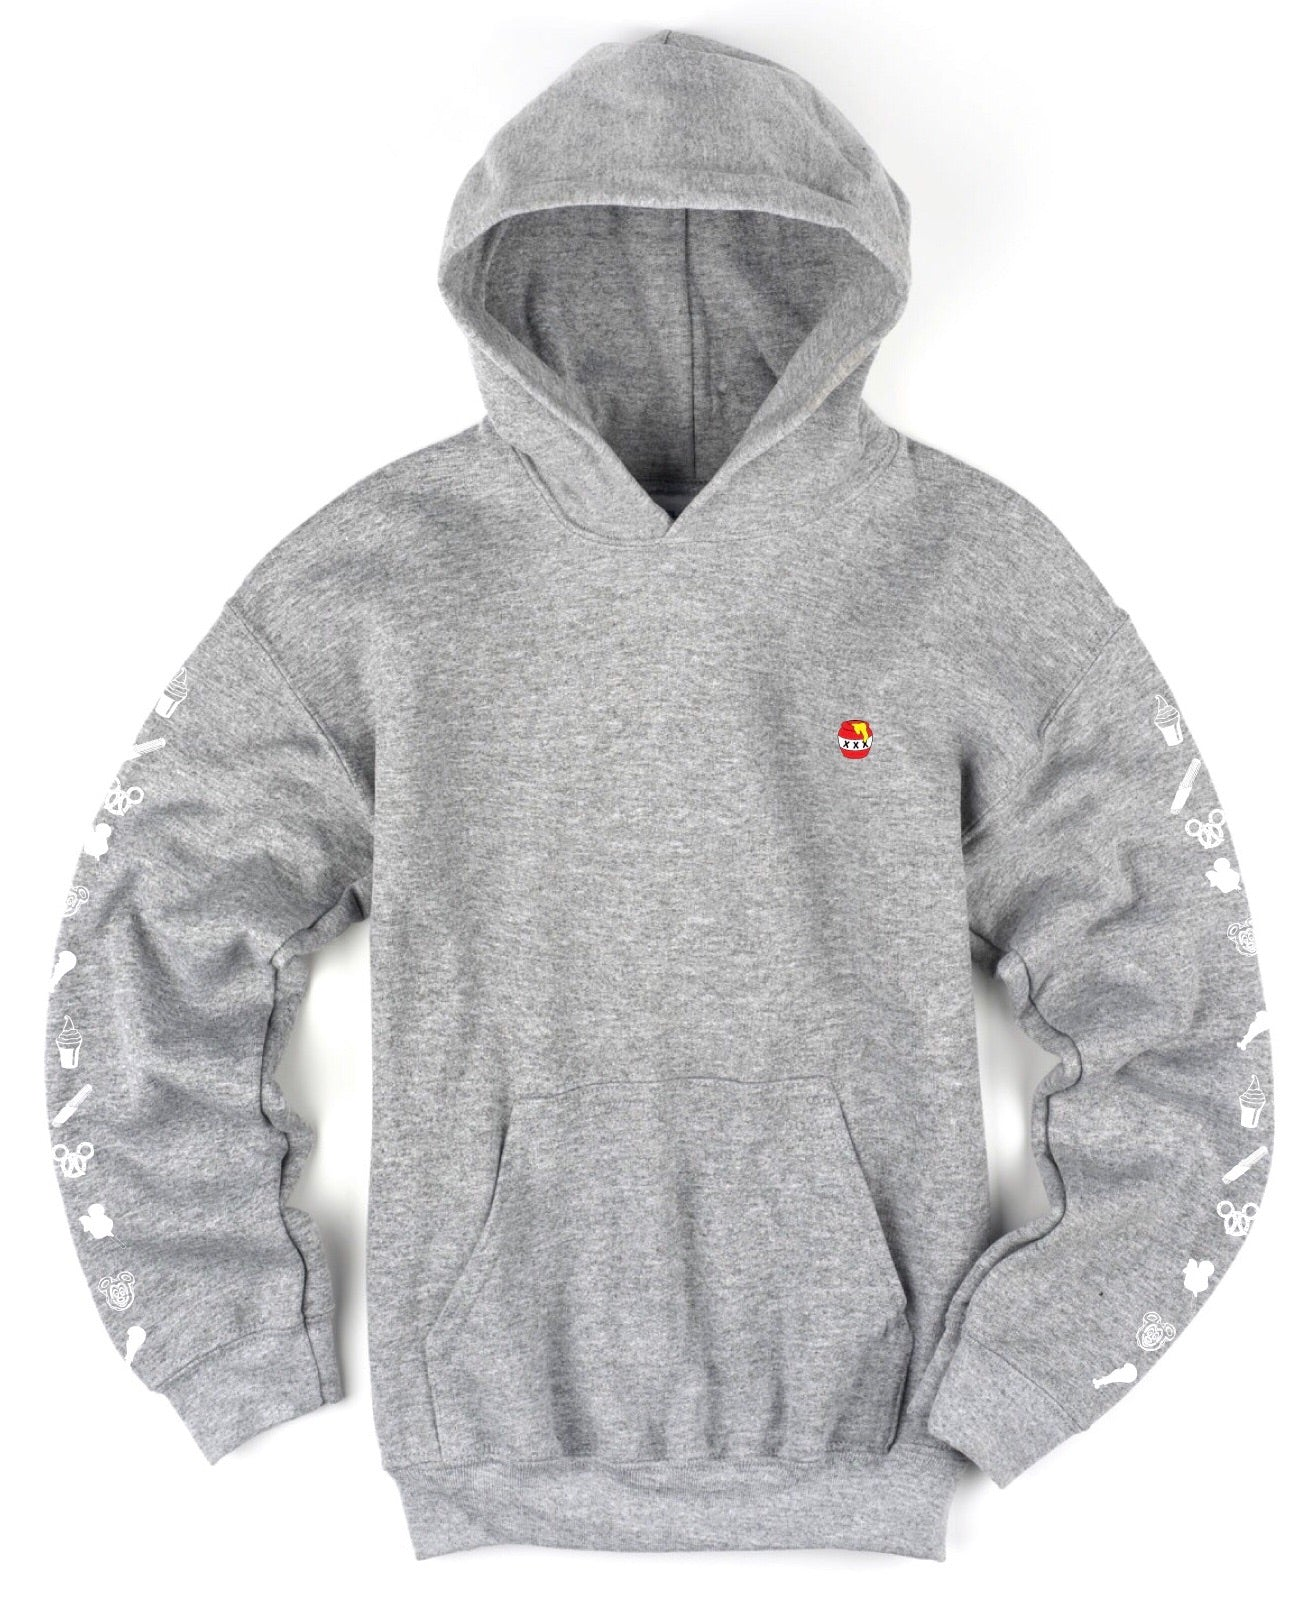 Snack Sweatshirt - Grey